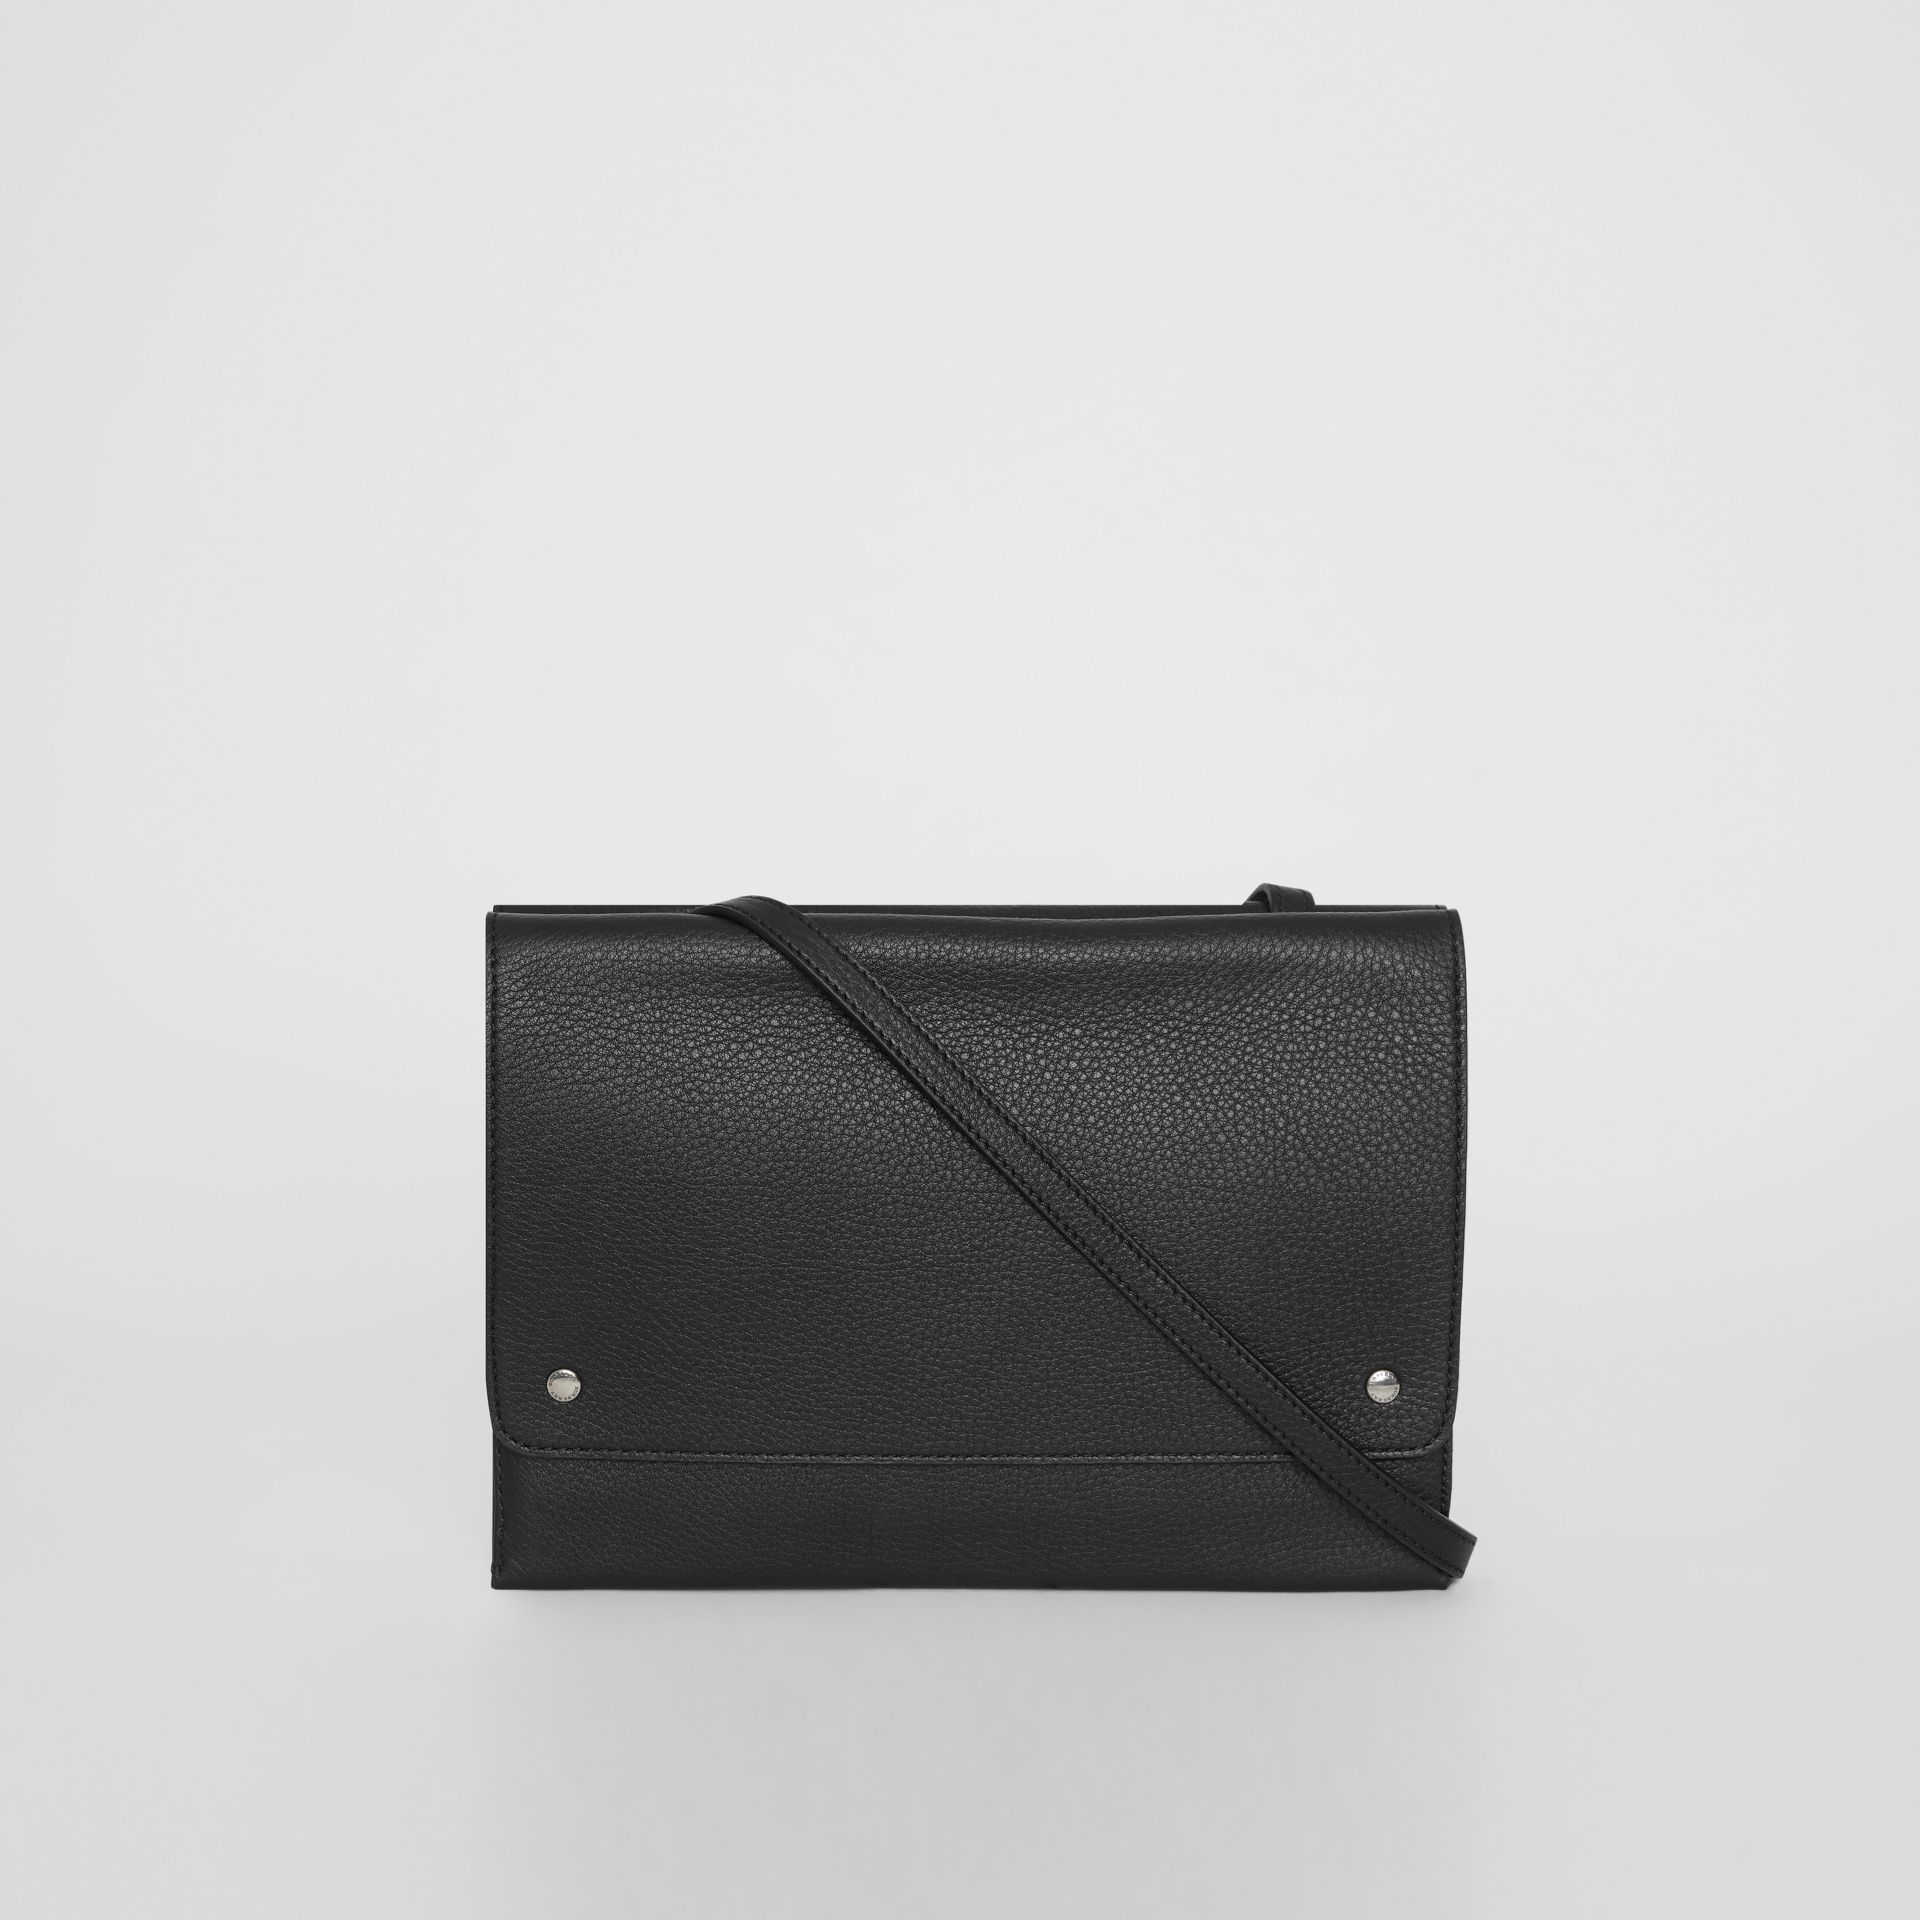 Leather Envelope Crossbody Bag in Black - Women | Burberry United States - gallery image 7